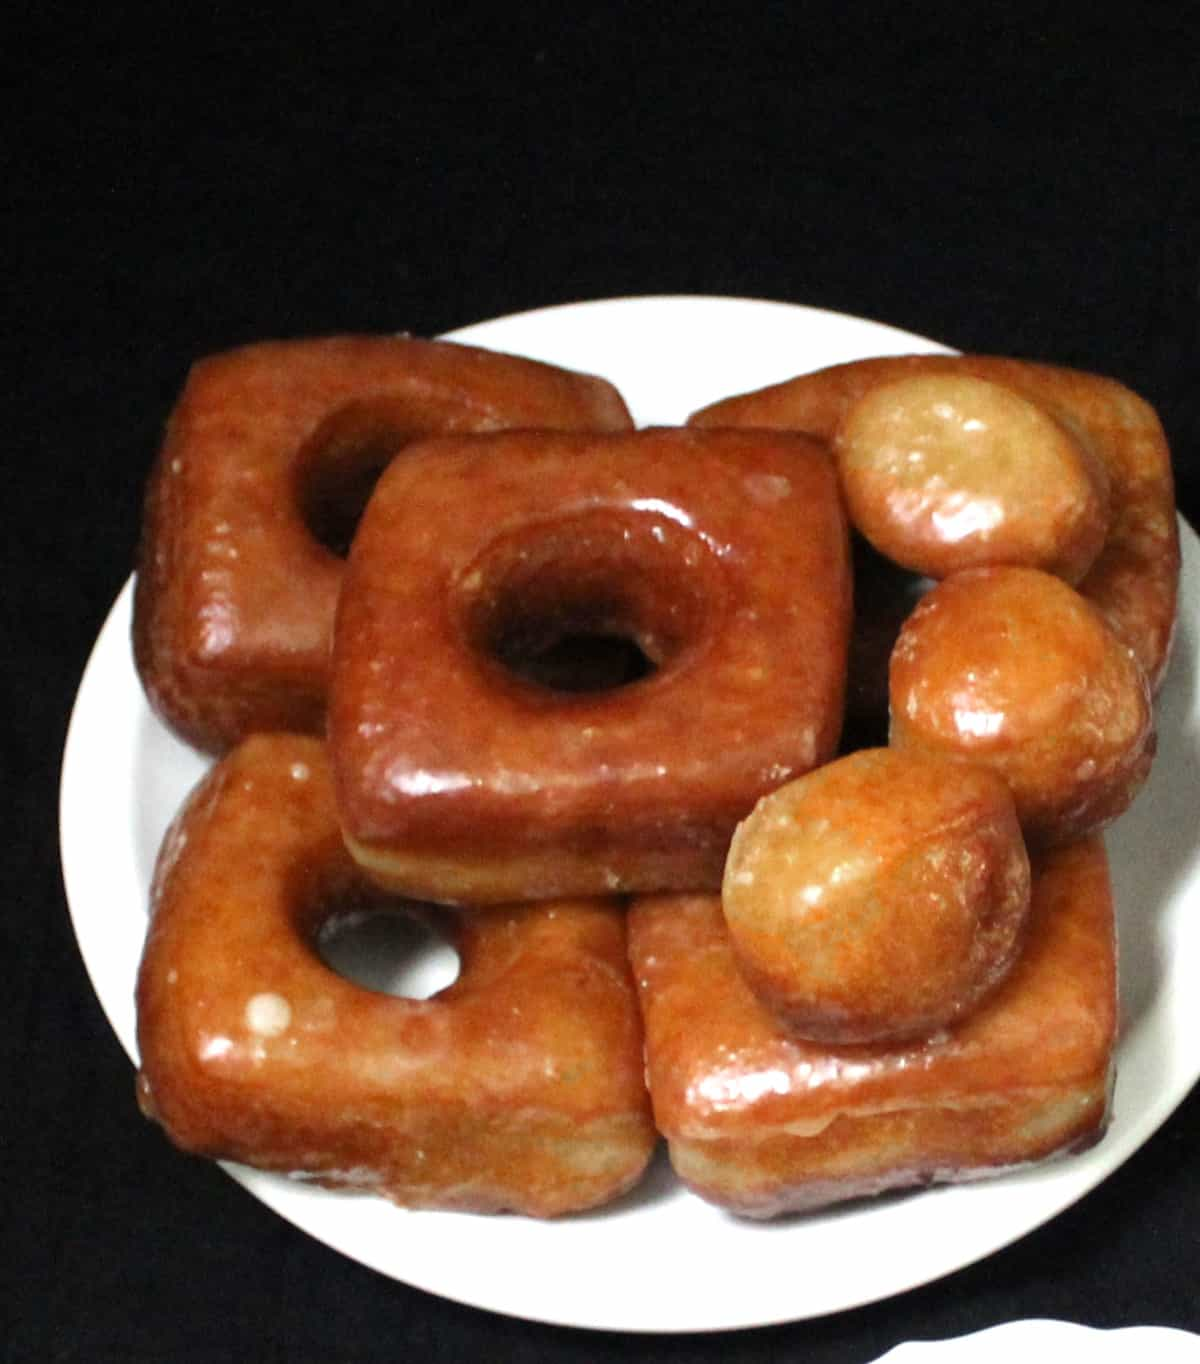 An overhead shot of a white plate stacked with square and round donuts with donut holes on a black background.